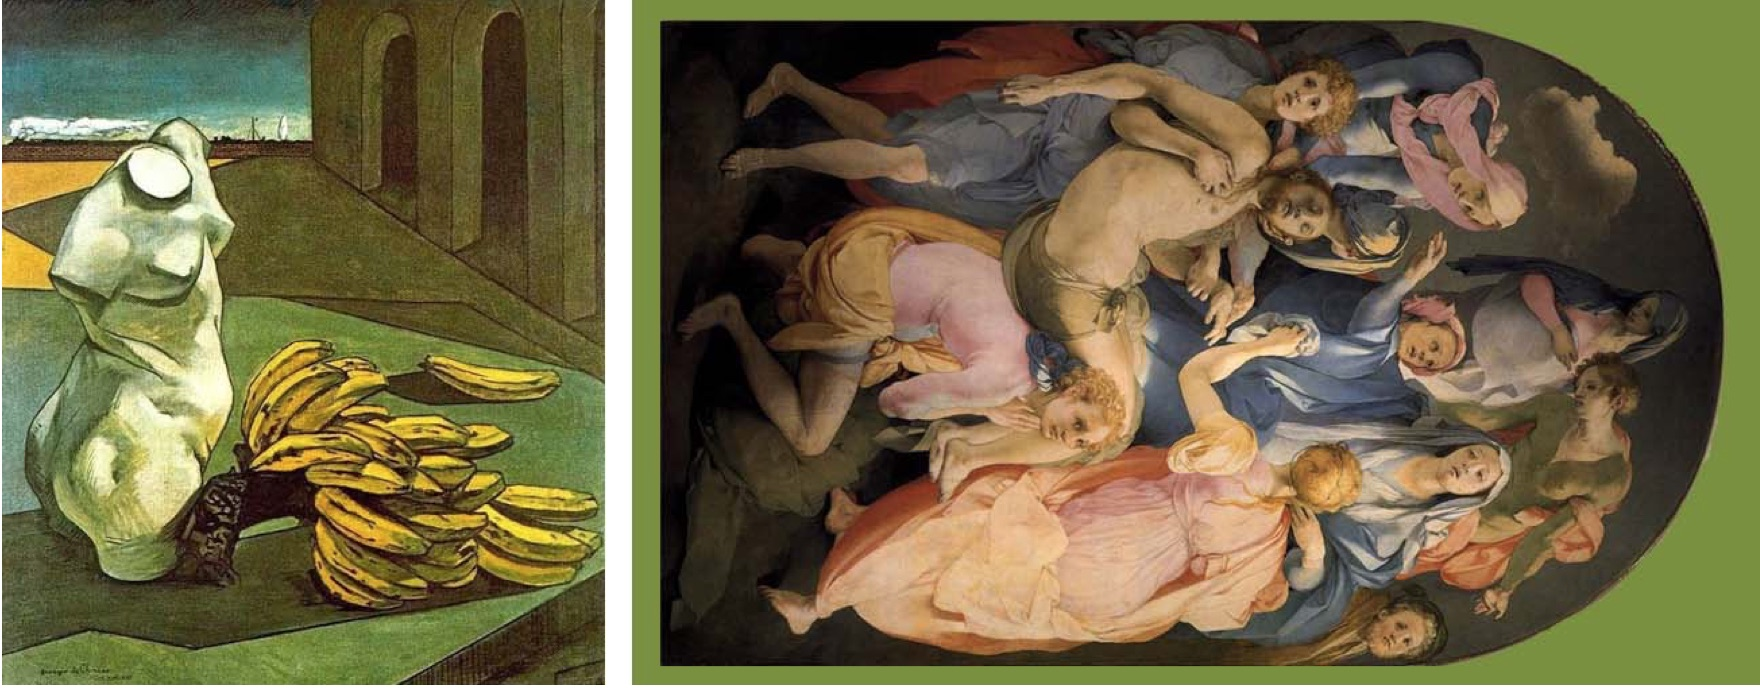 Photo that expresses a creative language: on the left painted with a human bust and a bunch of bananas, on the right a sacred painting on the death of Jesus